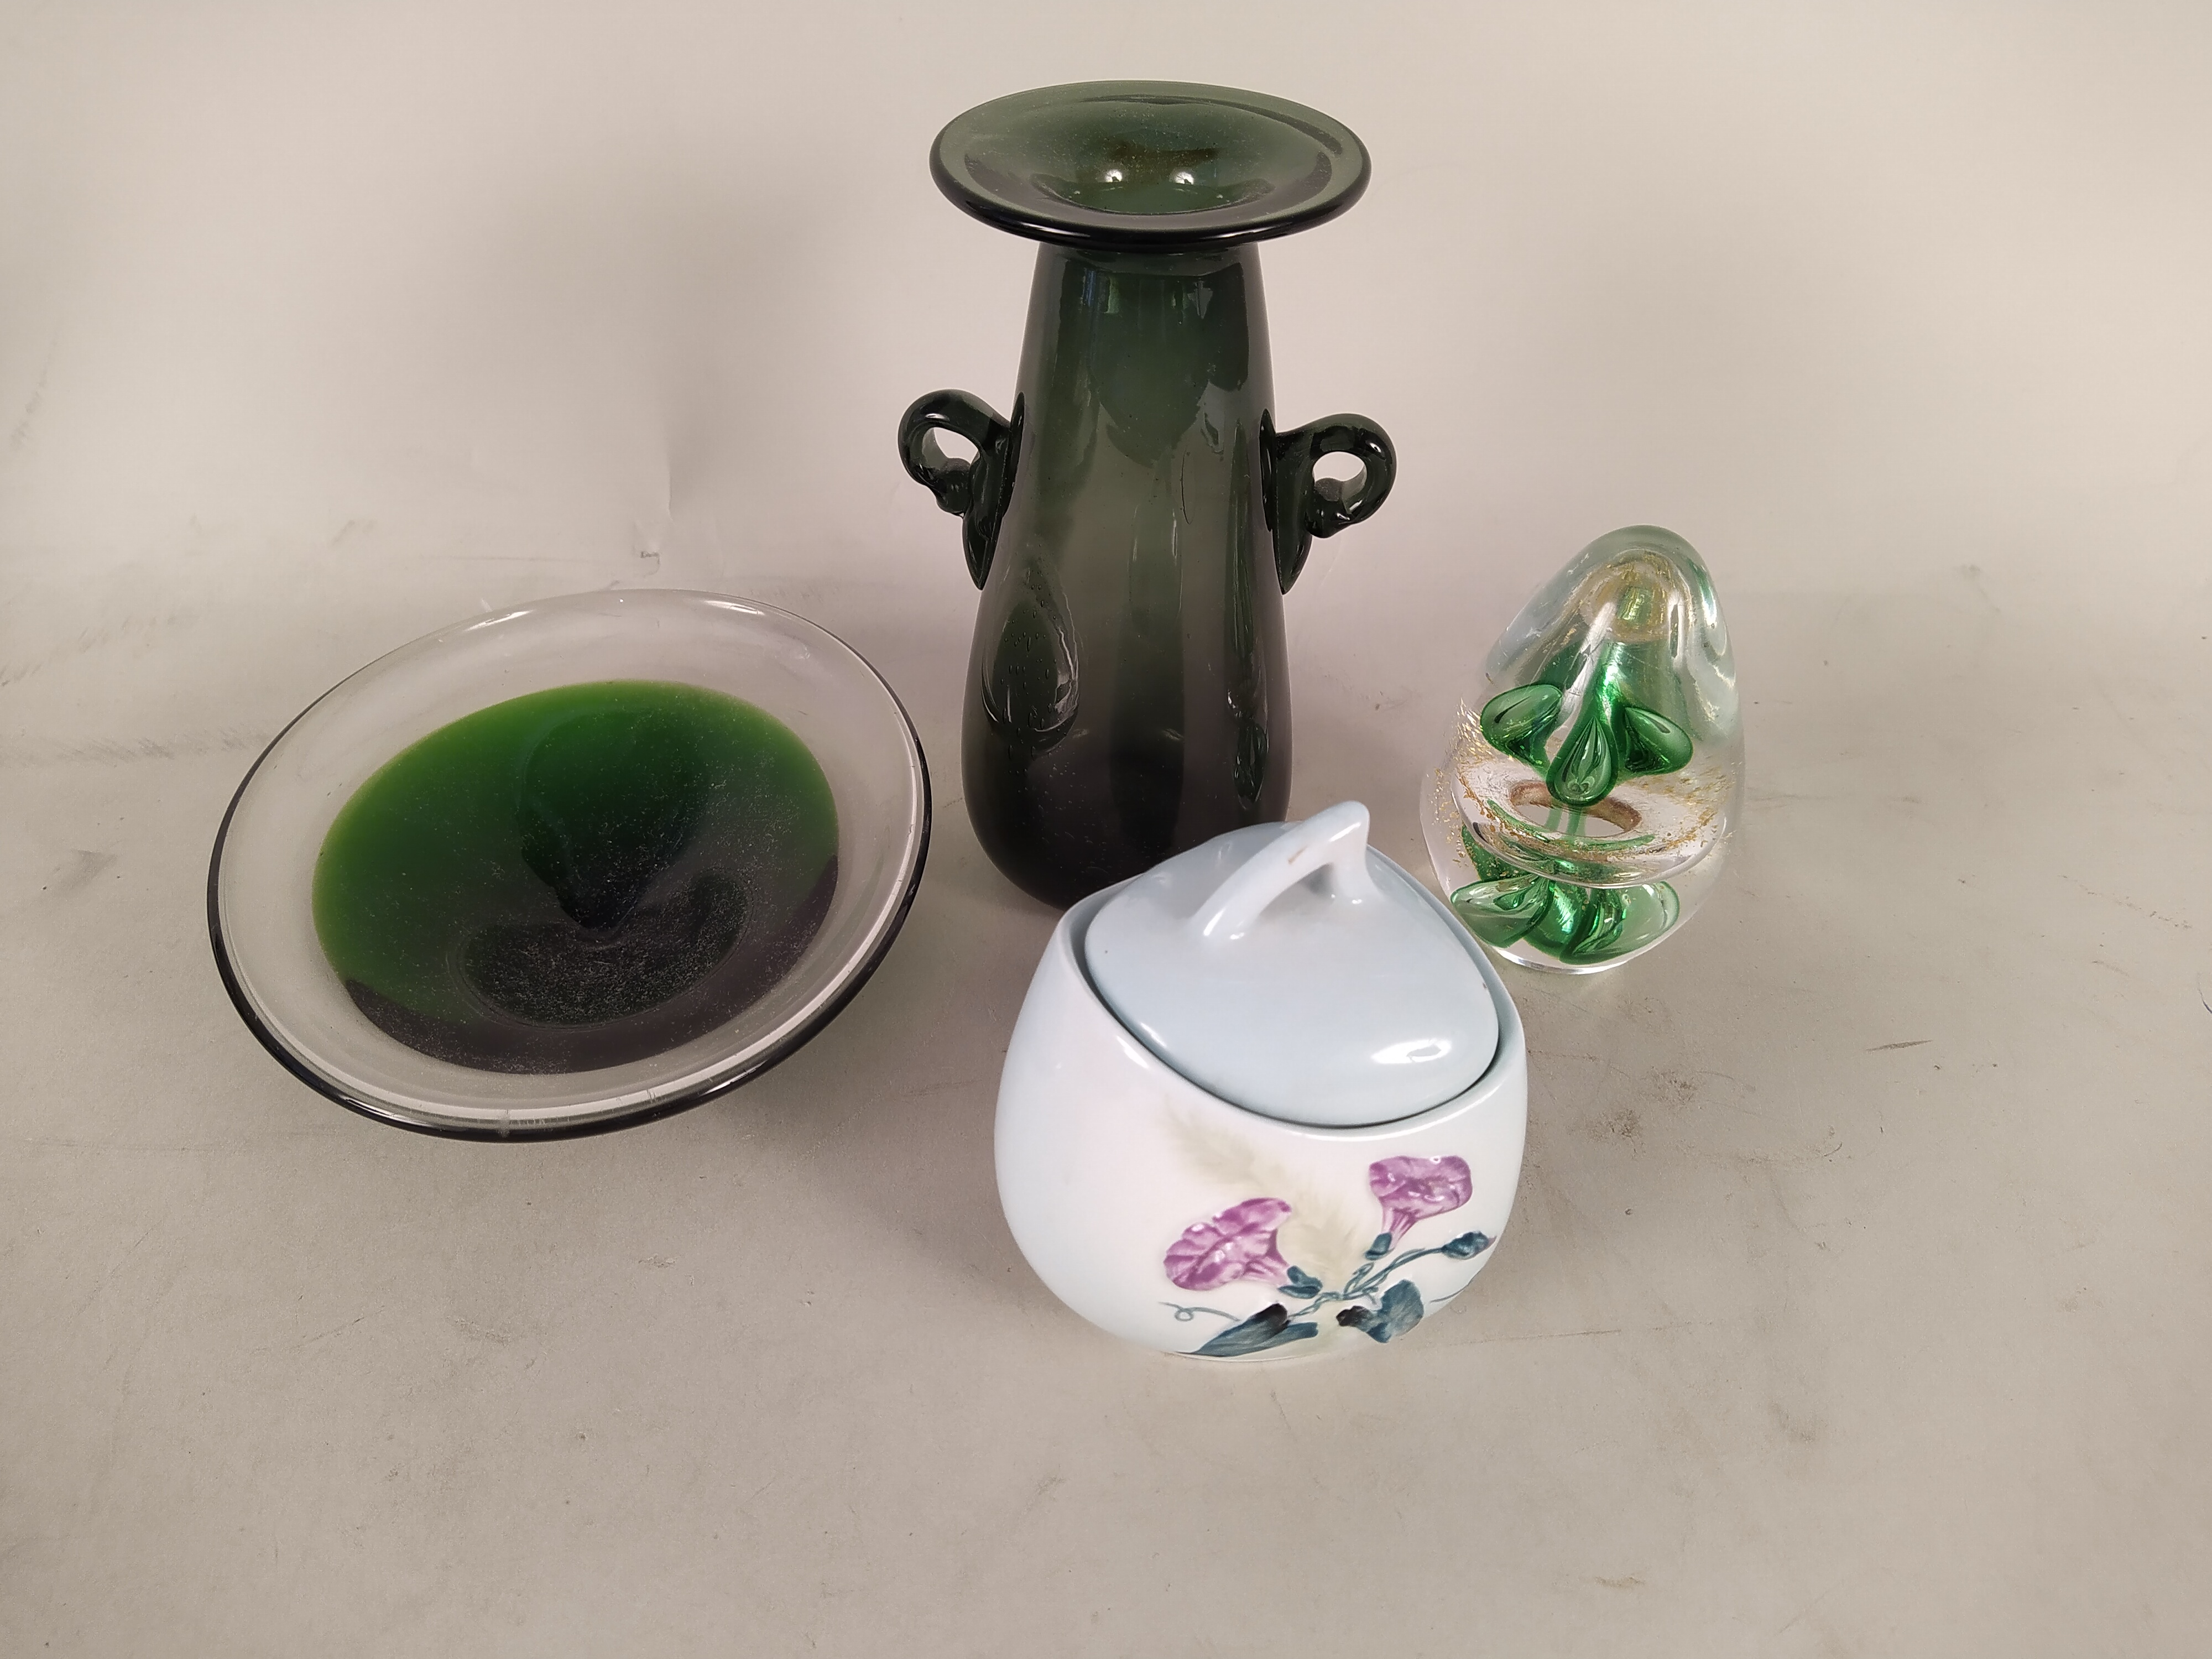 A Doulton style salad dish with matching servers, a Carlton ware lidded sugar, - Image 2 of 3